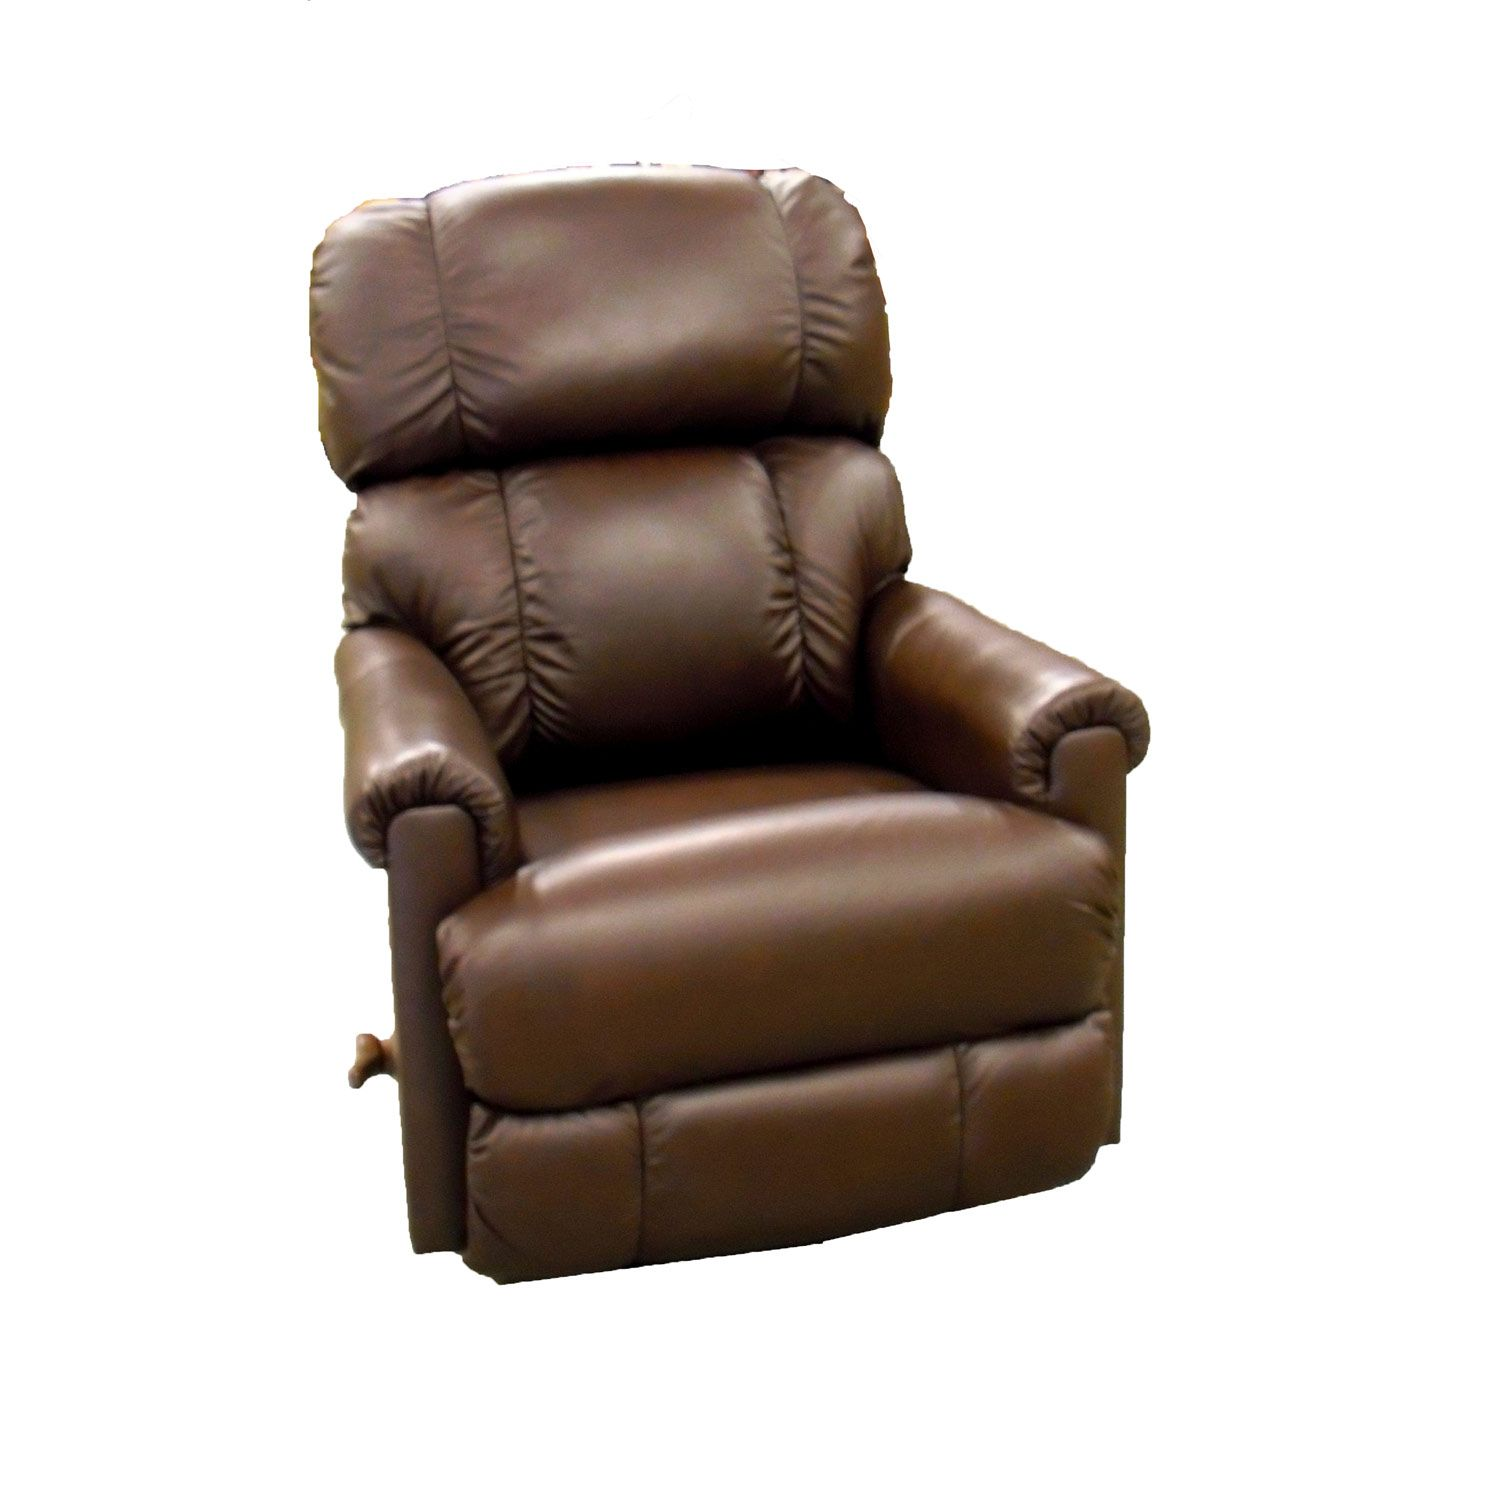 recliner boy lazy chair sweet